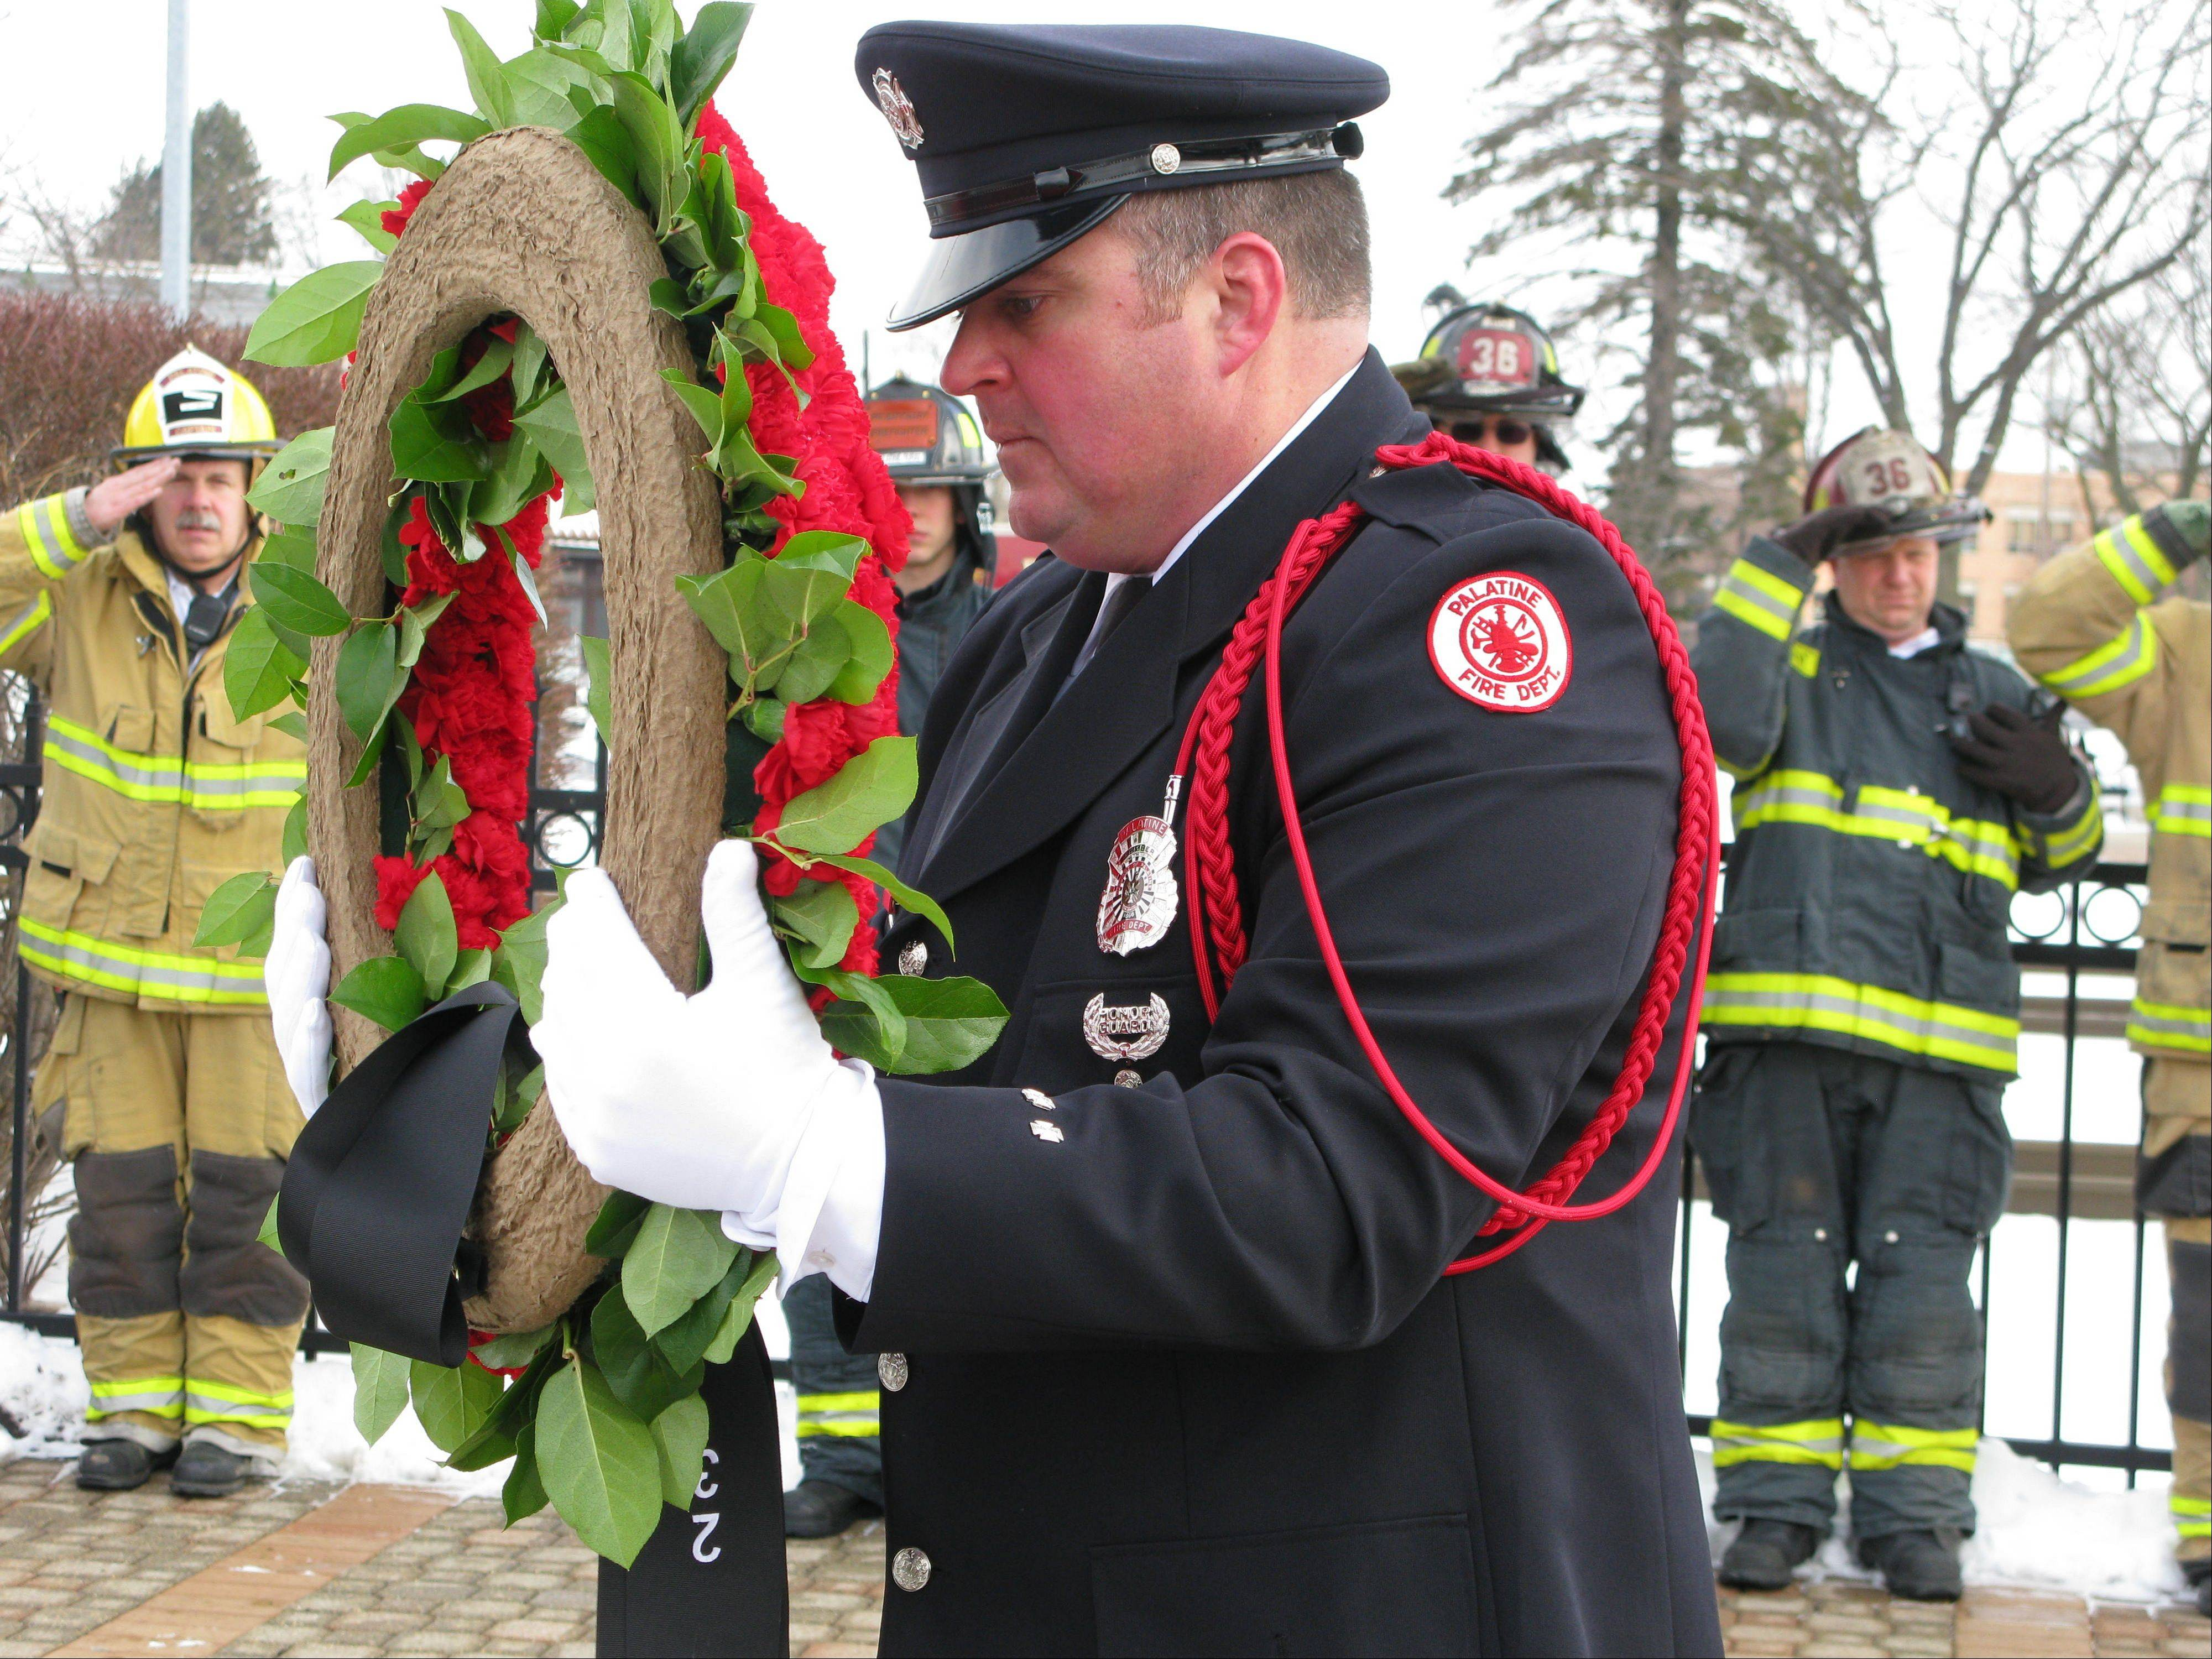 Palatine firefighter Dale Stankiewicz carries a wreath to place on the memorial for three fallen volunteer firefighters, John Wilson, Richard Freeman and Warren Ahlgrim, who perished during a fire rescue on Feb. 23, 1973. Roughly 200 people, including firefighters from several area departments, attended a ceremony Saturday at the Firefighters Memorial in downtown Palatine to honor their memory and commemorate the 40th anniversary of their deaths.